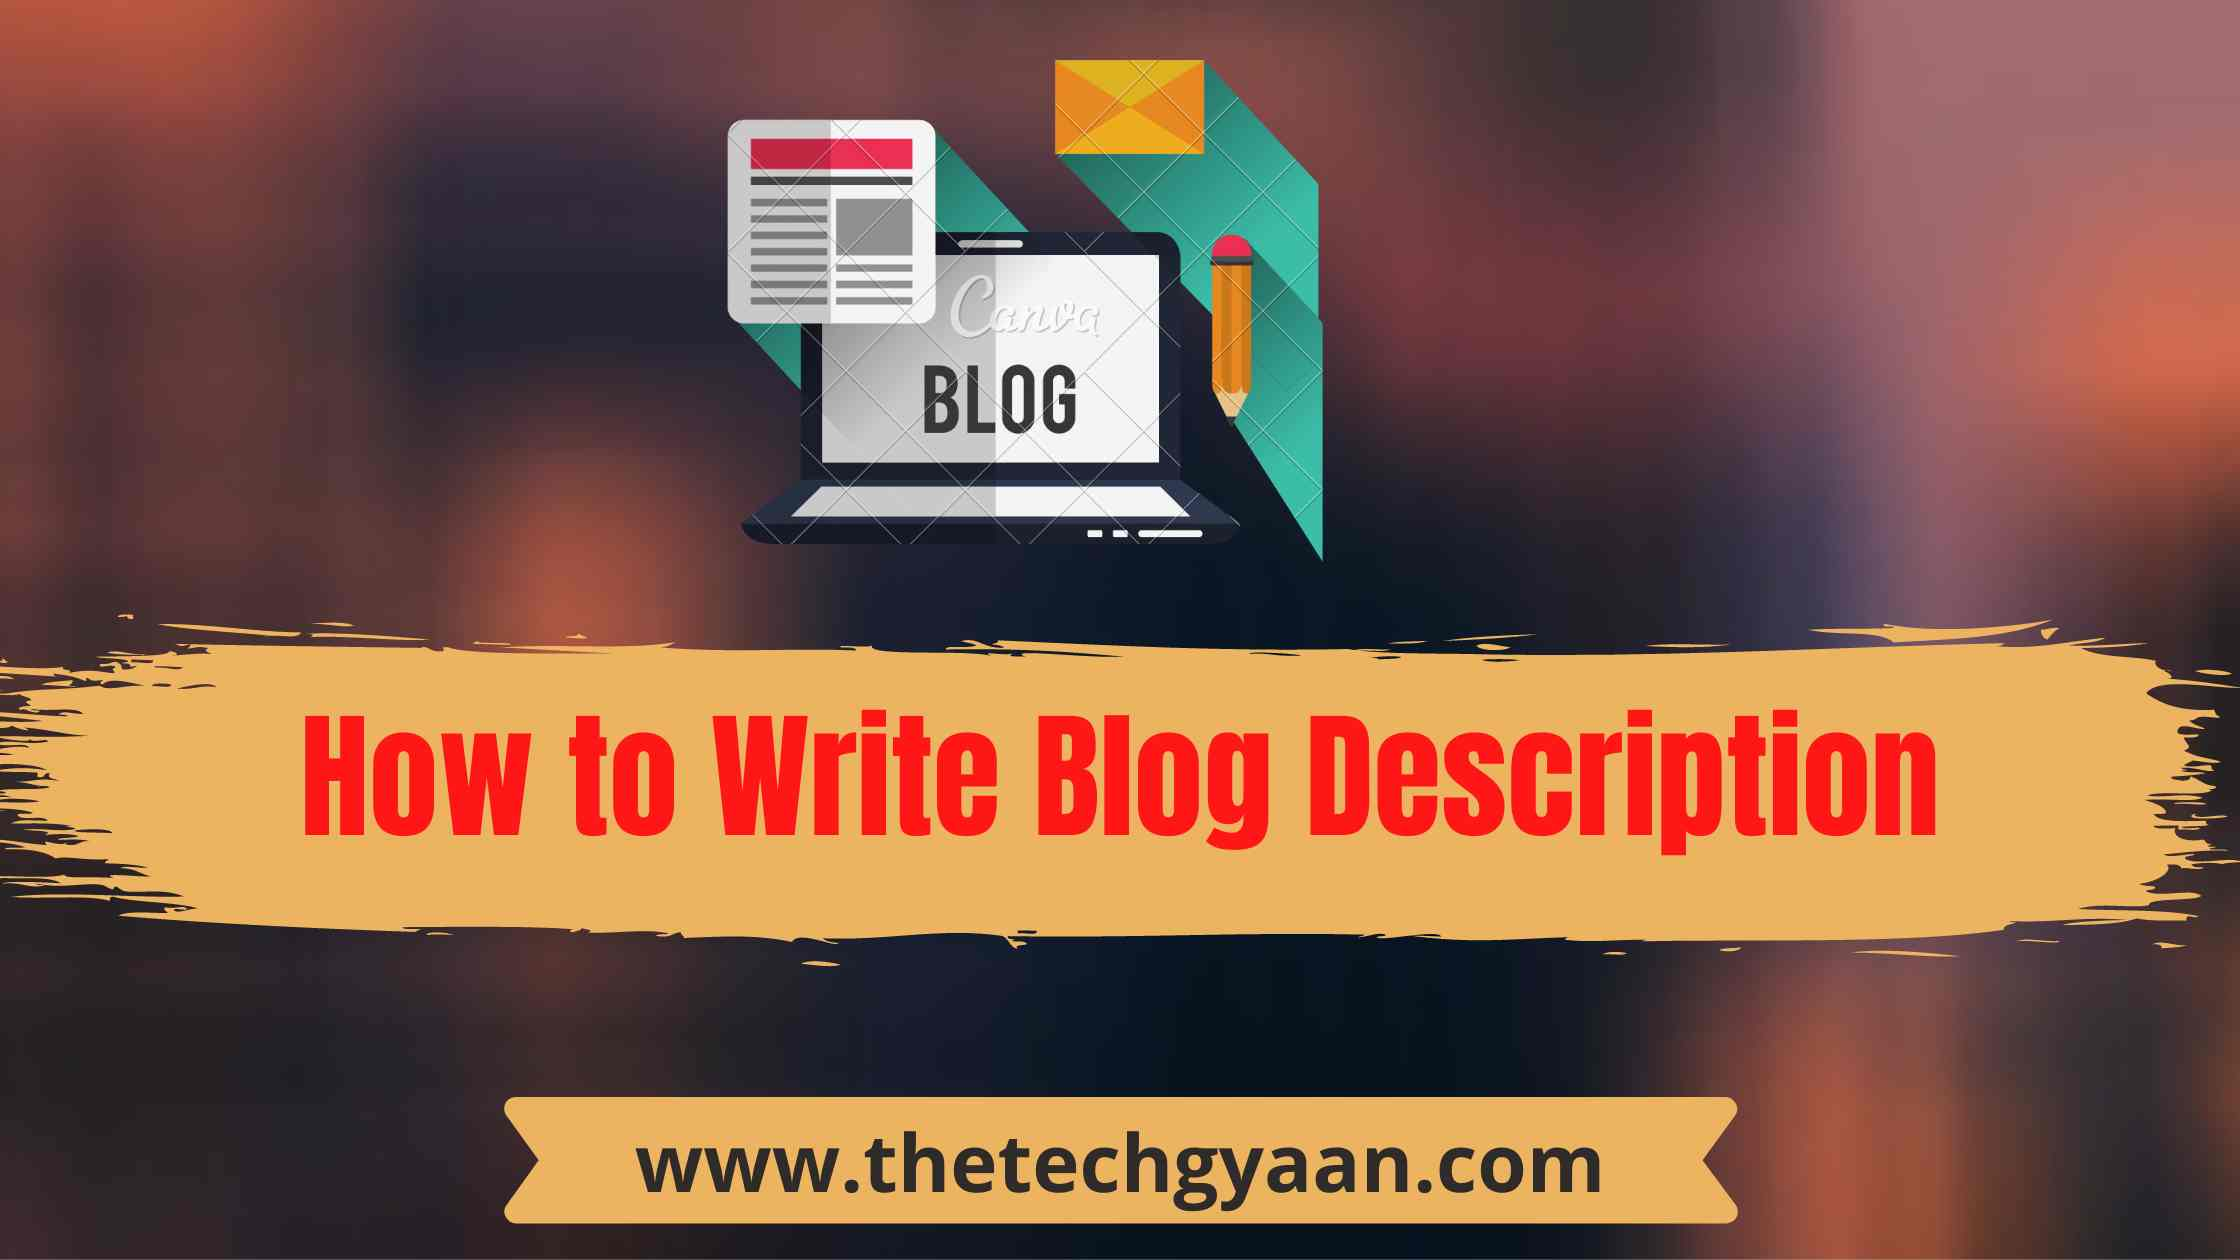 How to Write Blog Description